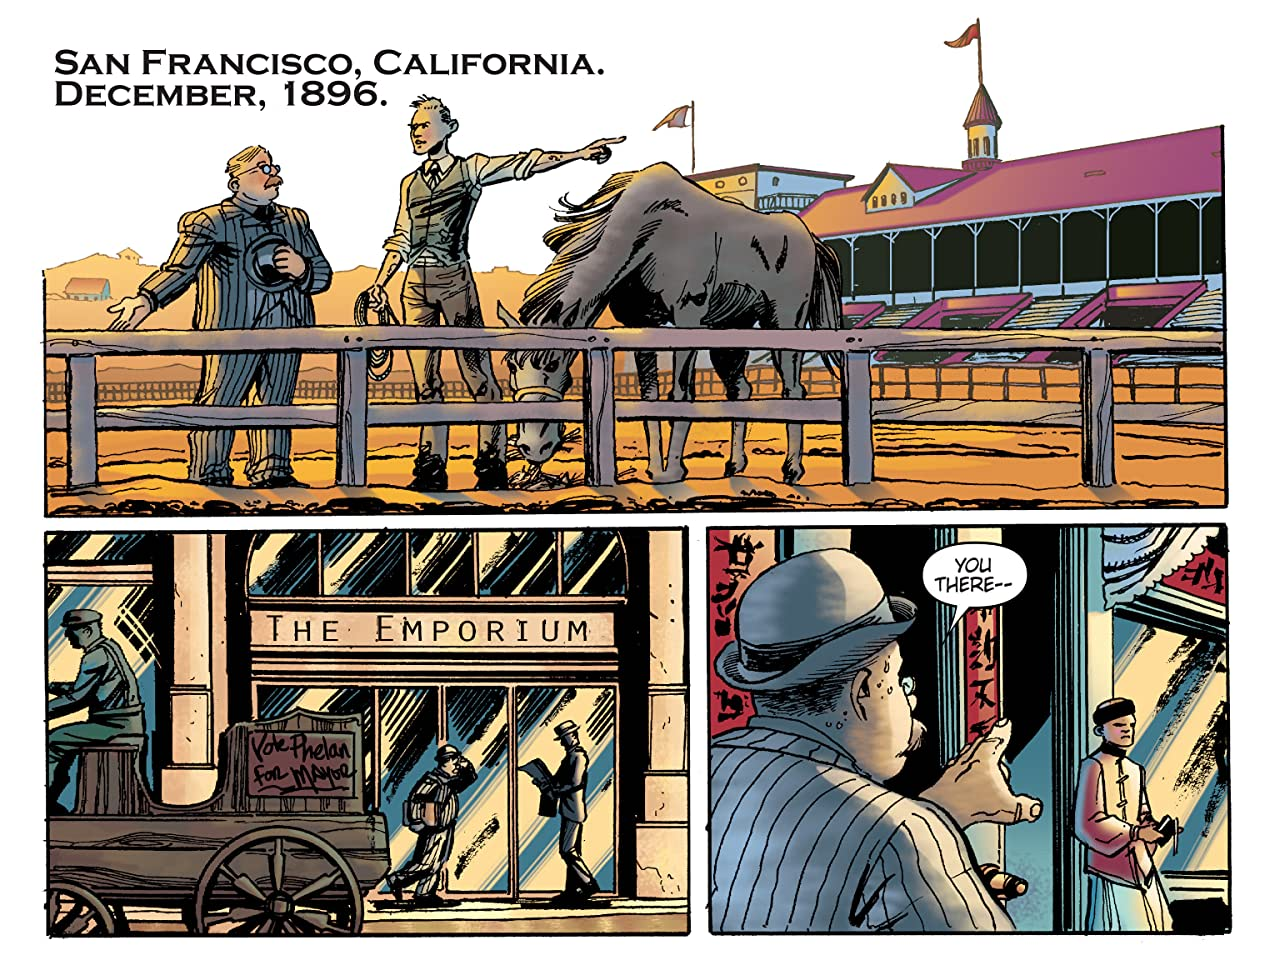 The Further Travels Of Wyatt Earp #2